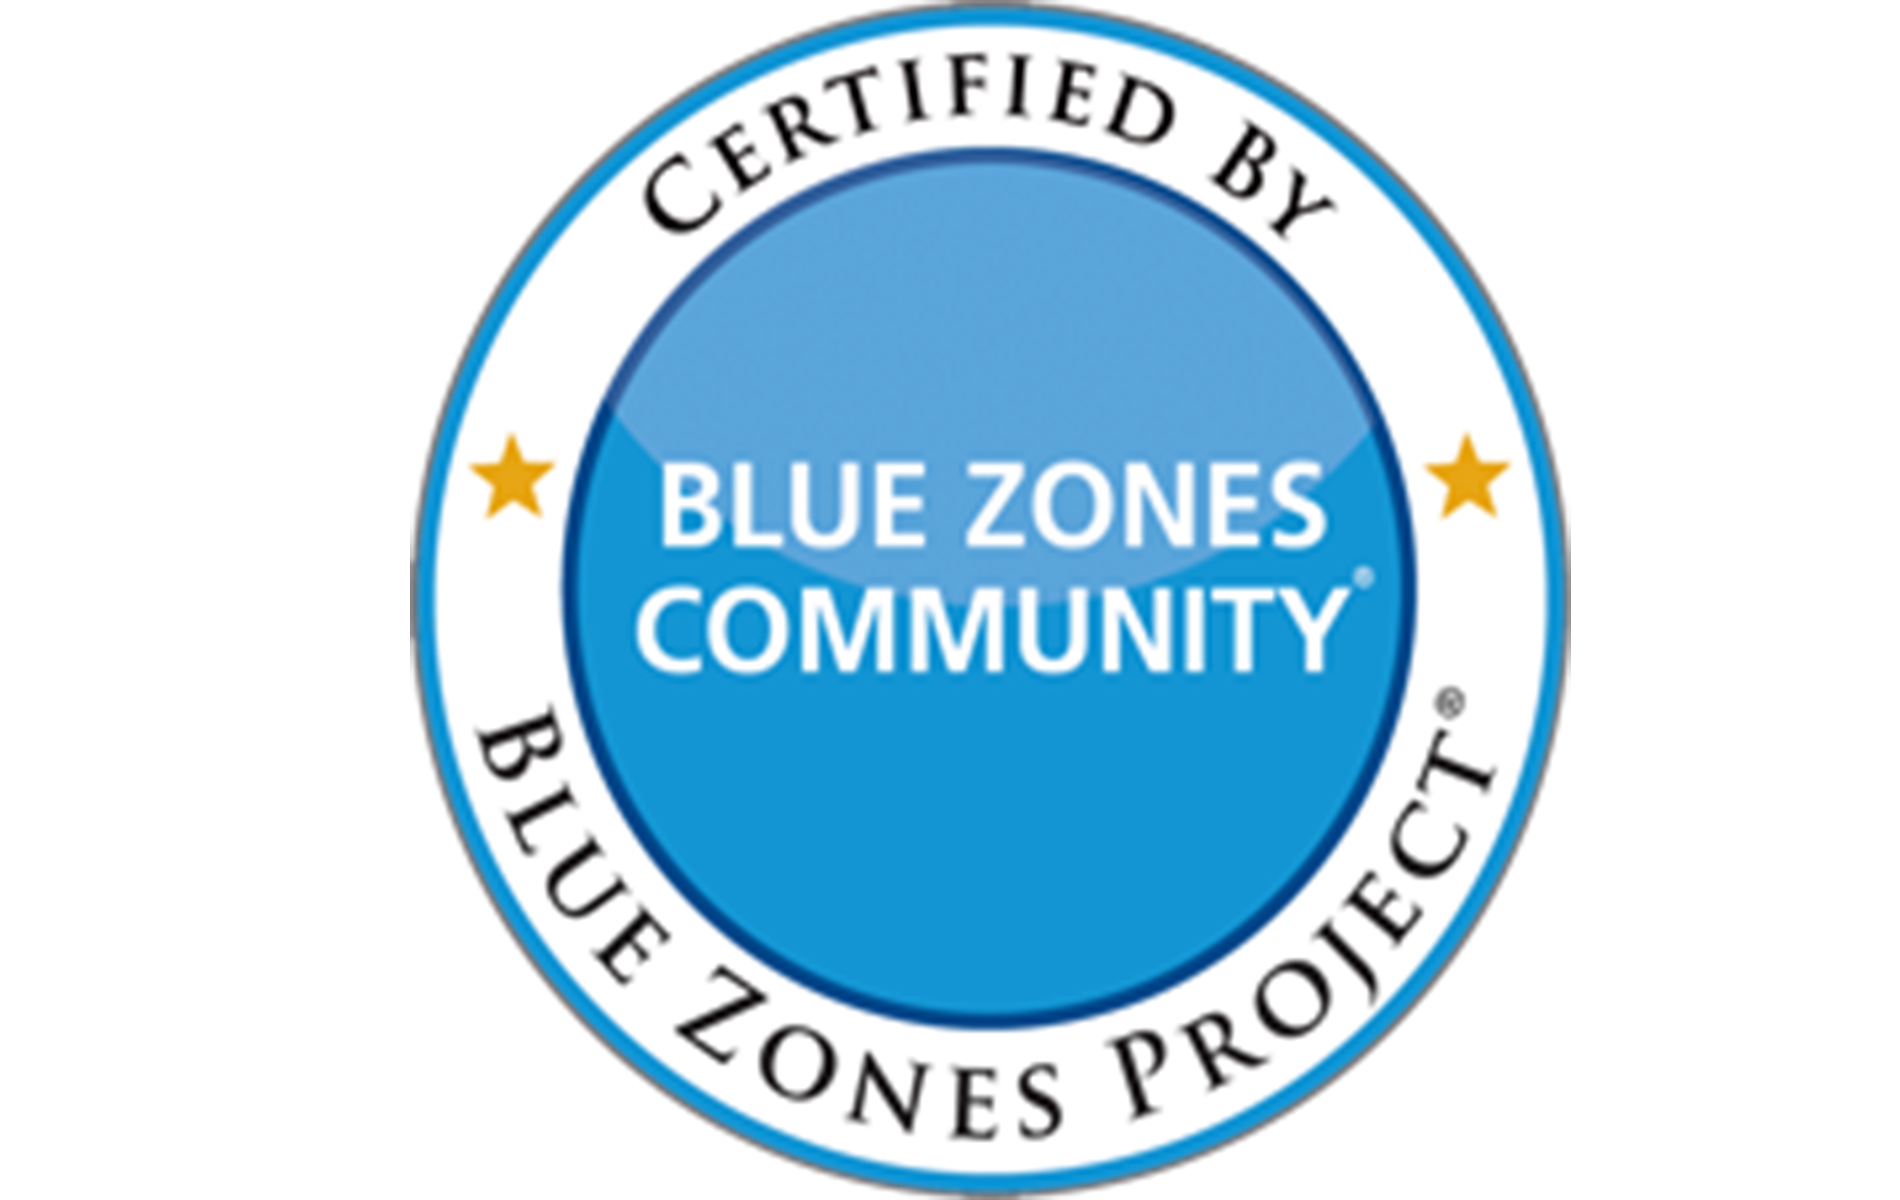 Blue Zones with border